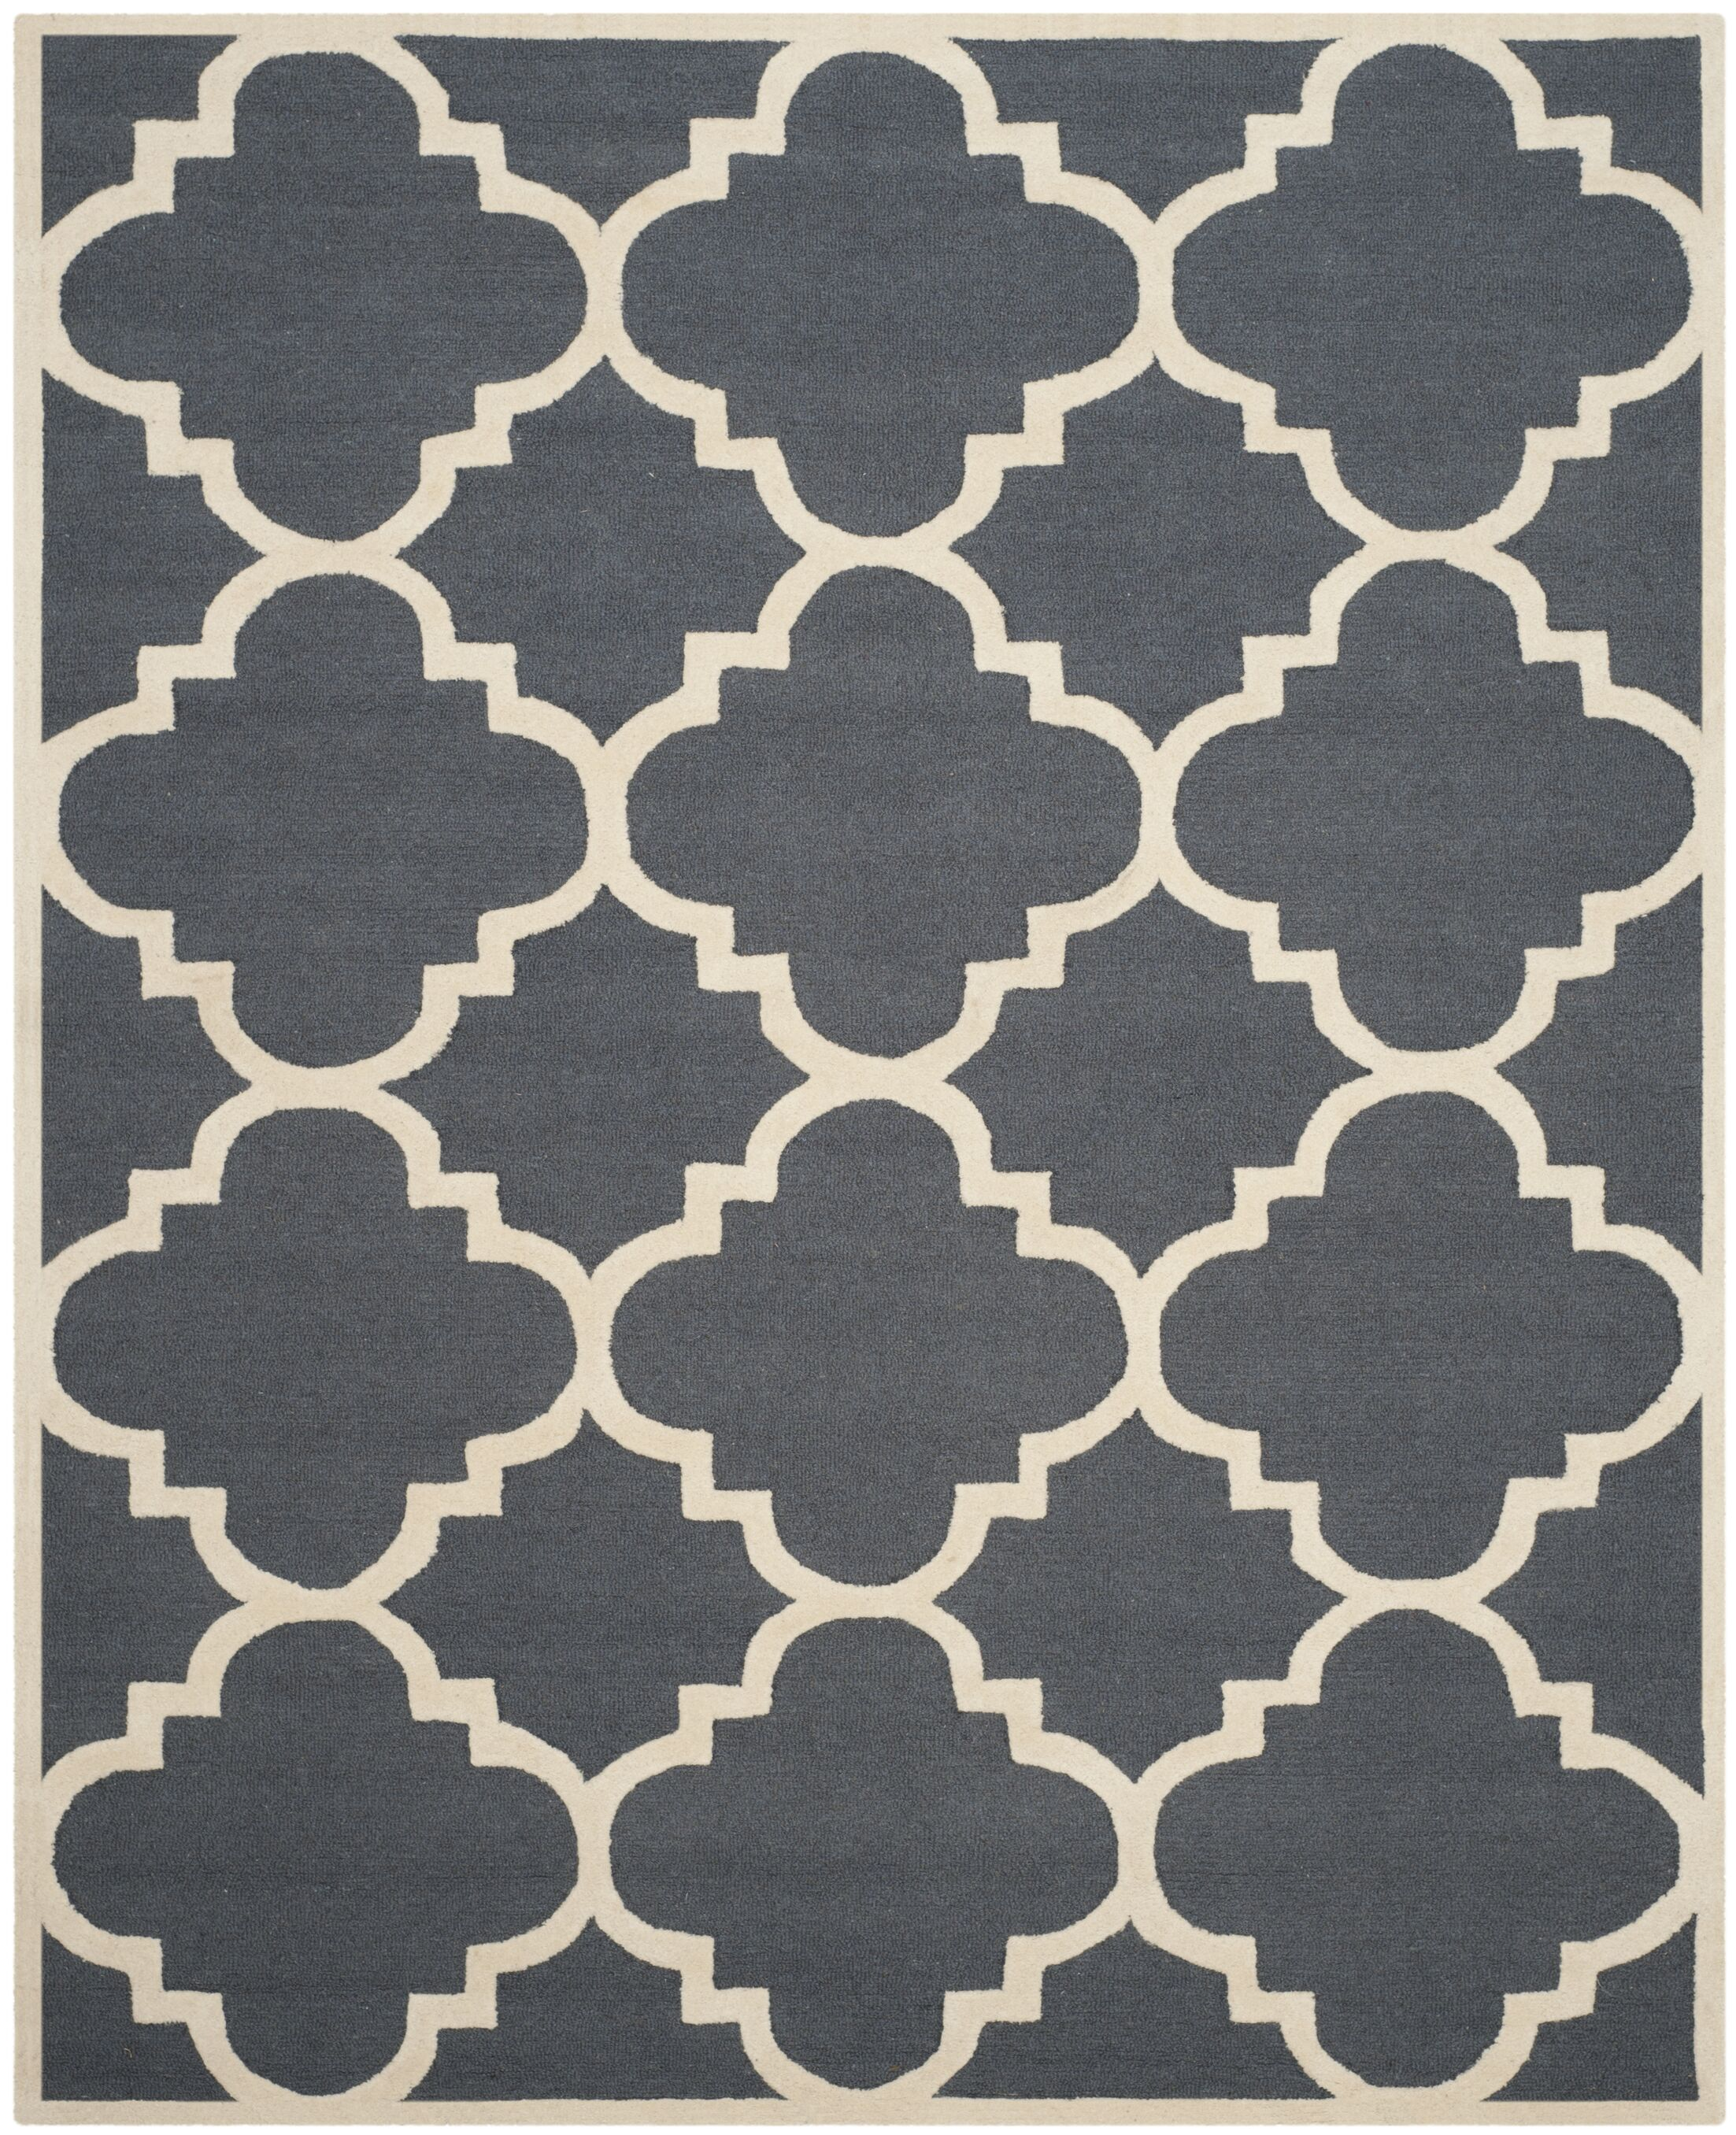 Blakemore Hand-Tufted Dark Grey/Ivory Area Rug Rug Size: Rectangle 9' x 12'